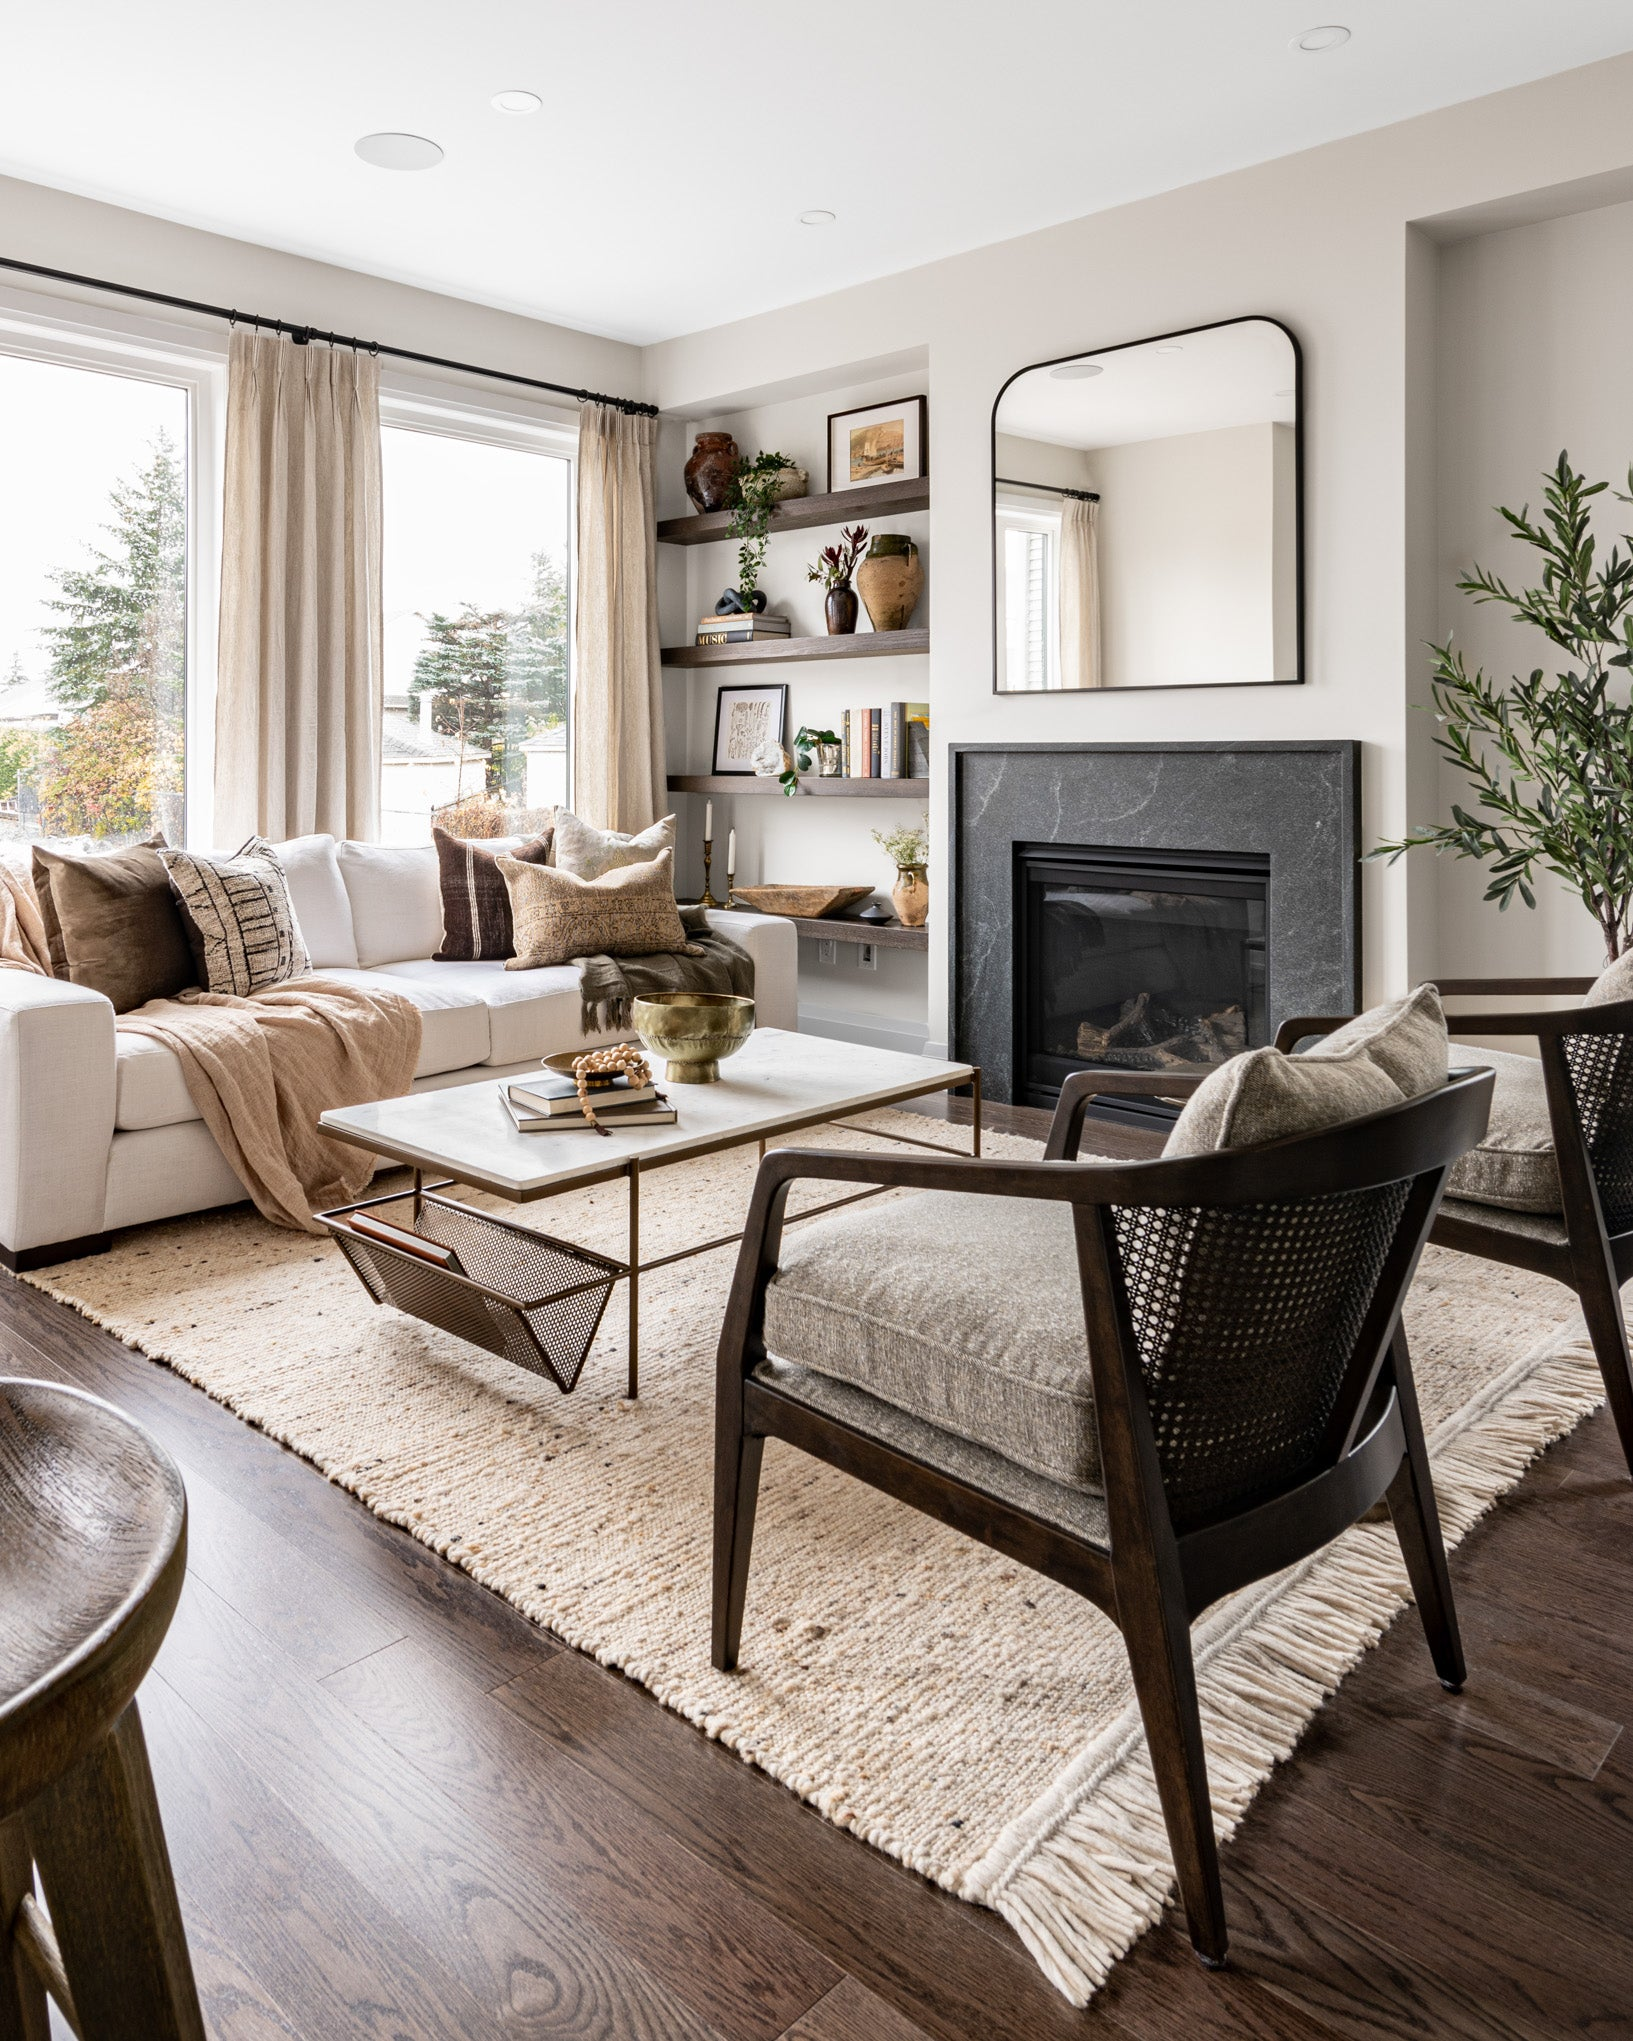 Cozy living room with modern fireplace design.